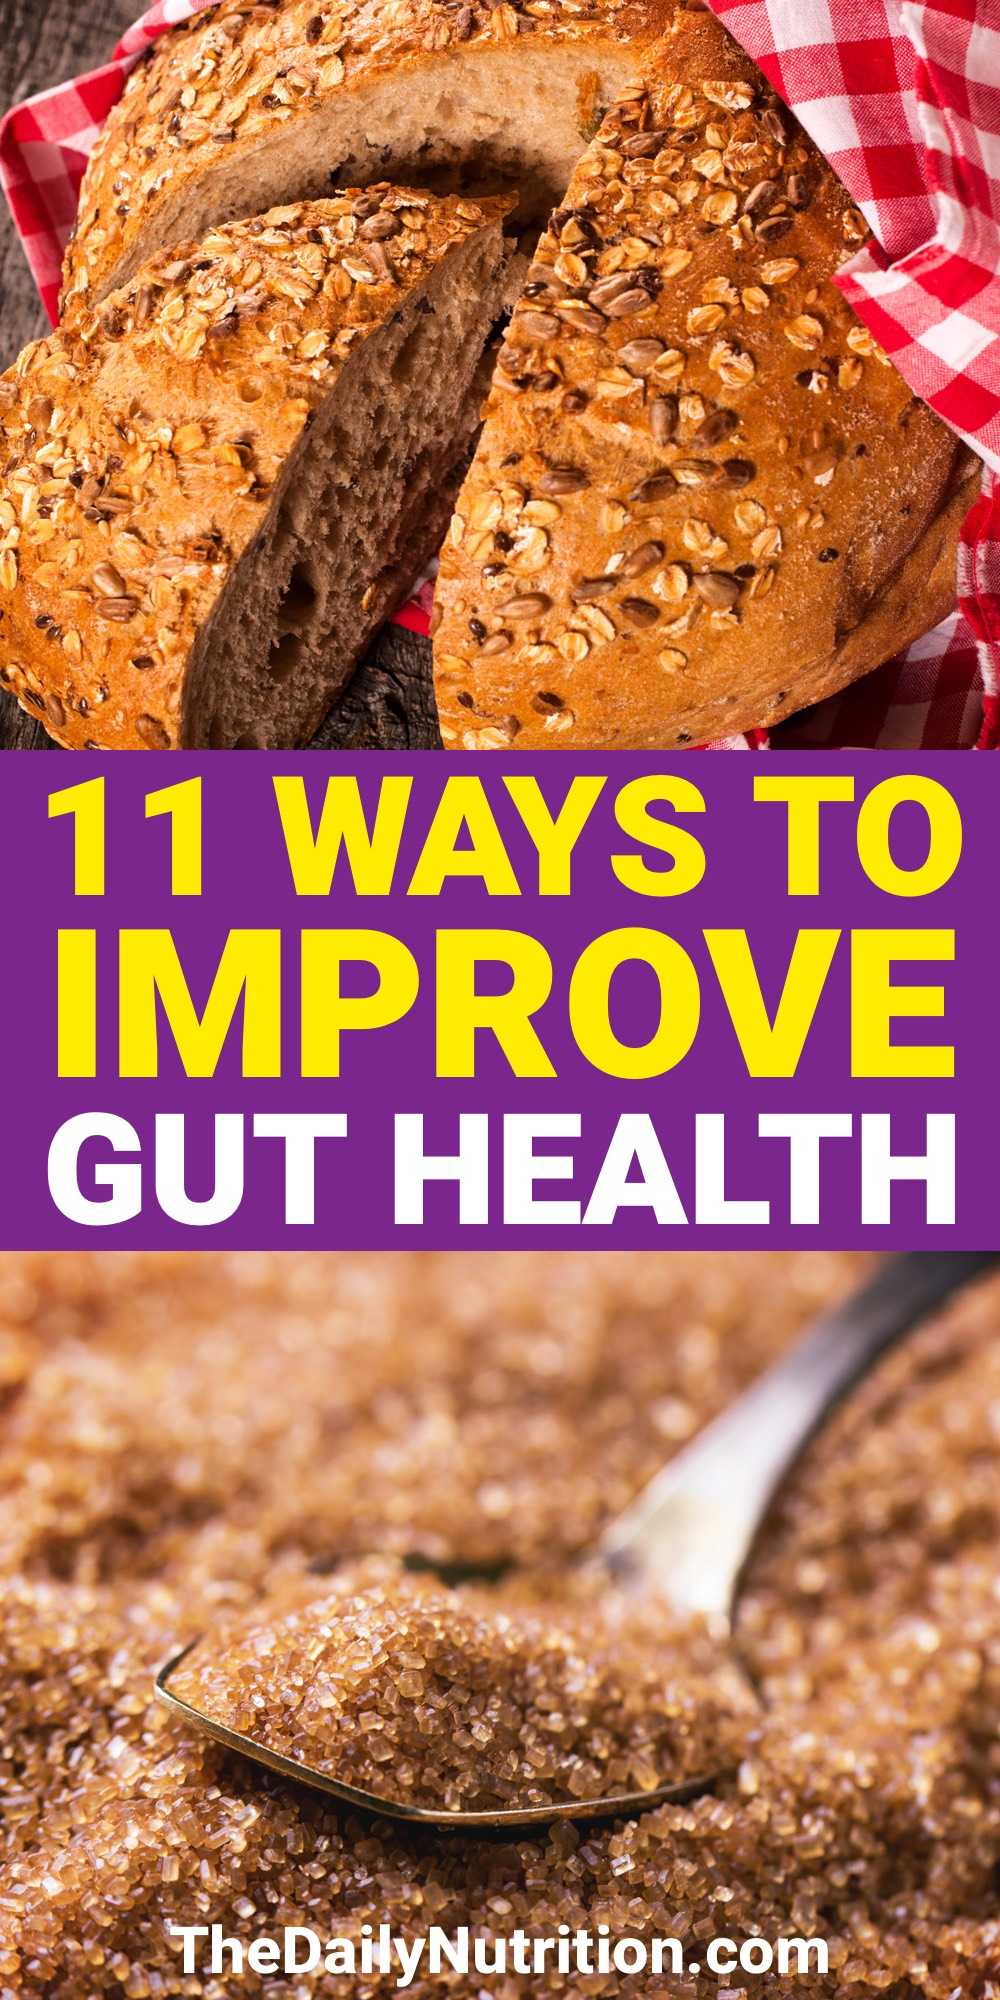 You can improve gut health with through these 11 tips. It'll greatly change your gut health relatively quickly.